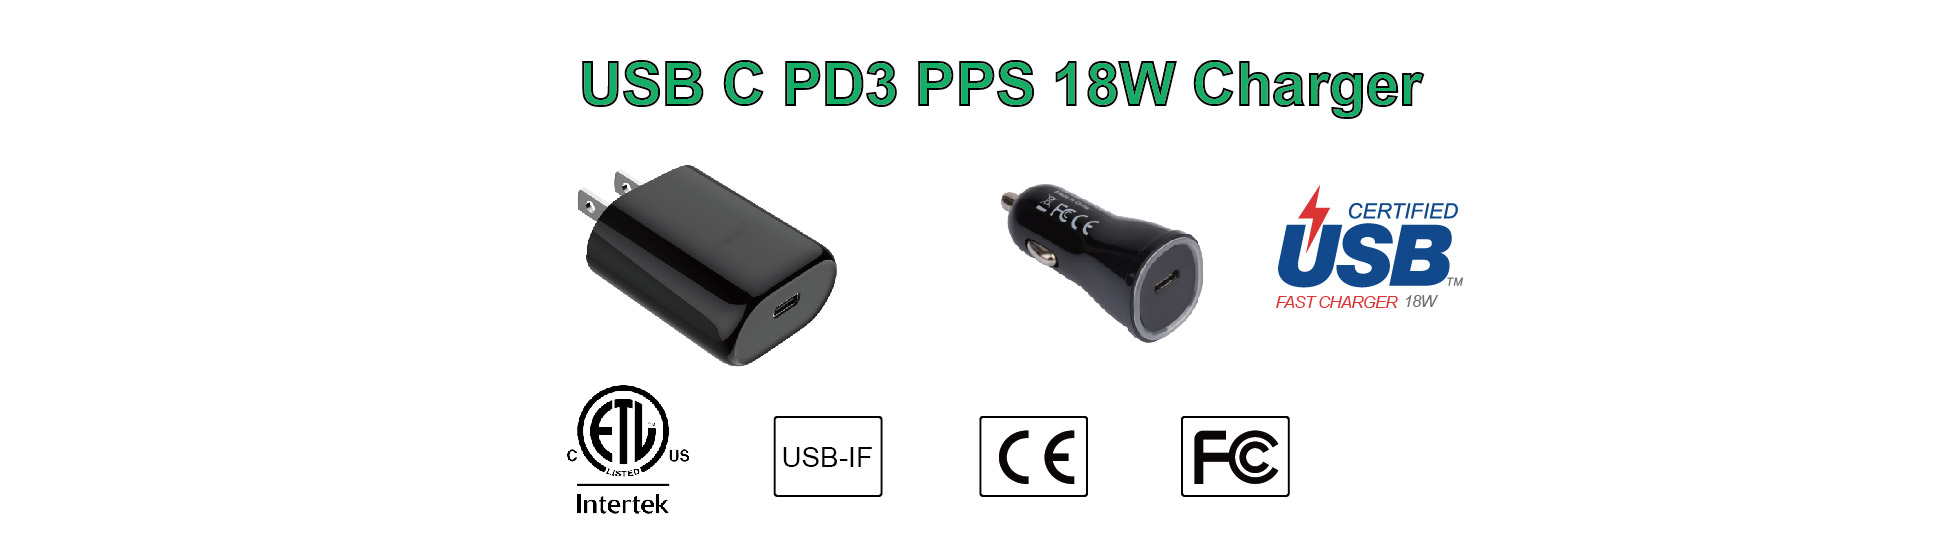 USB C PD3 PPS 18W Charger